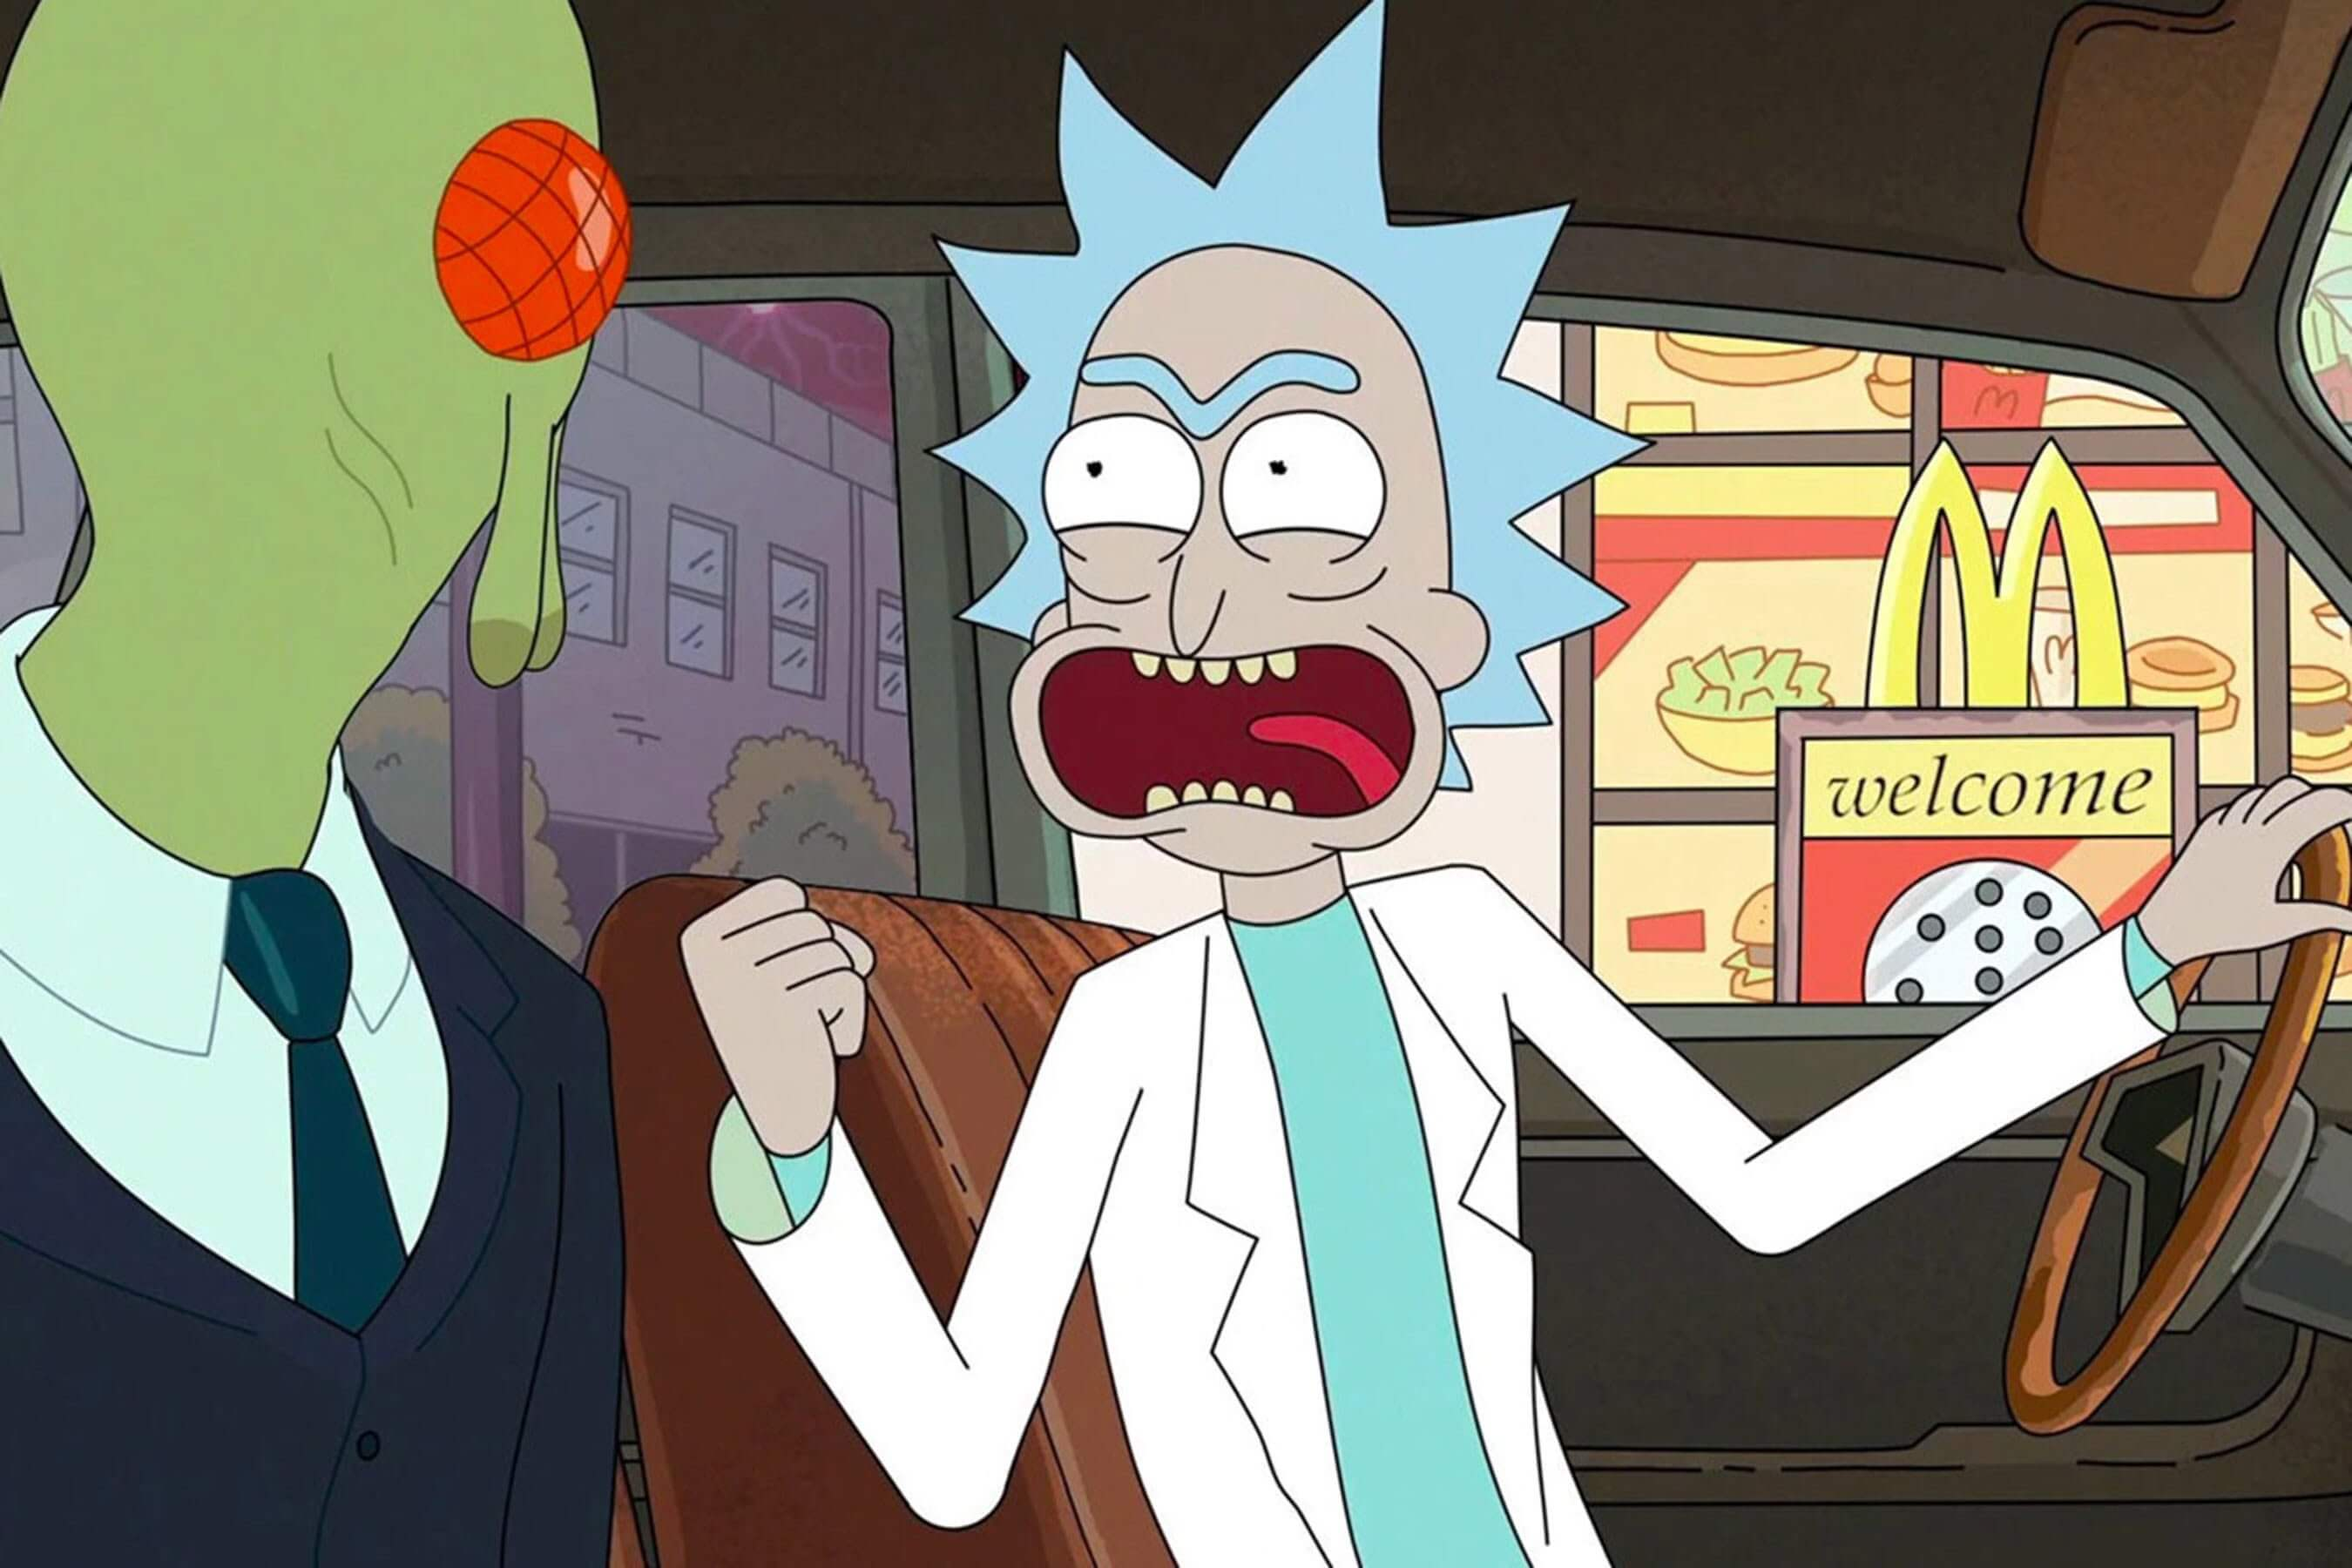 New Rick And Morty Has A Release Date, But Fans Are Outraged